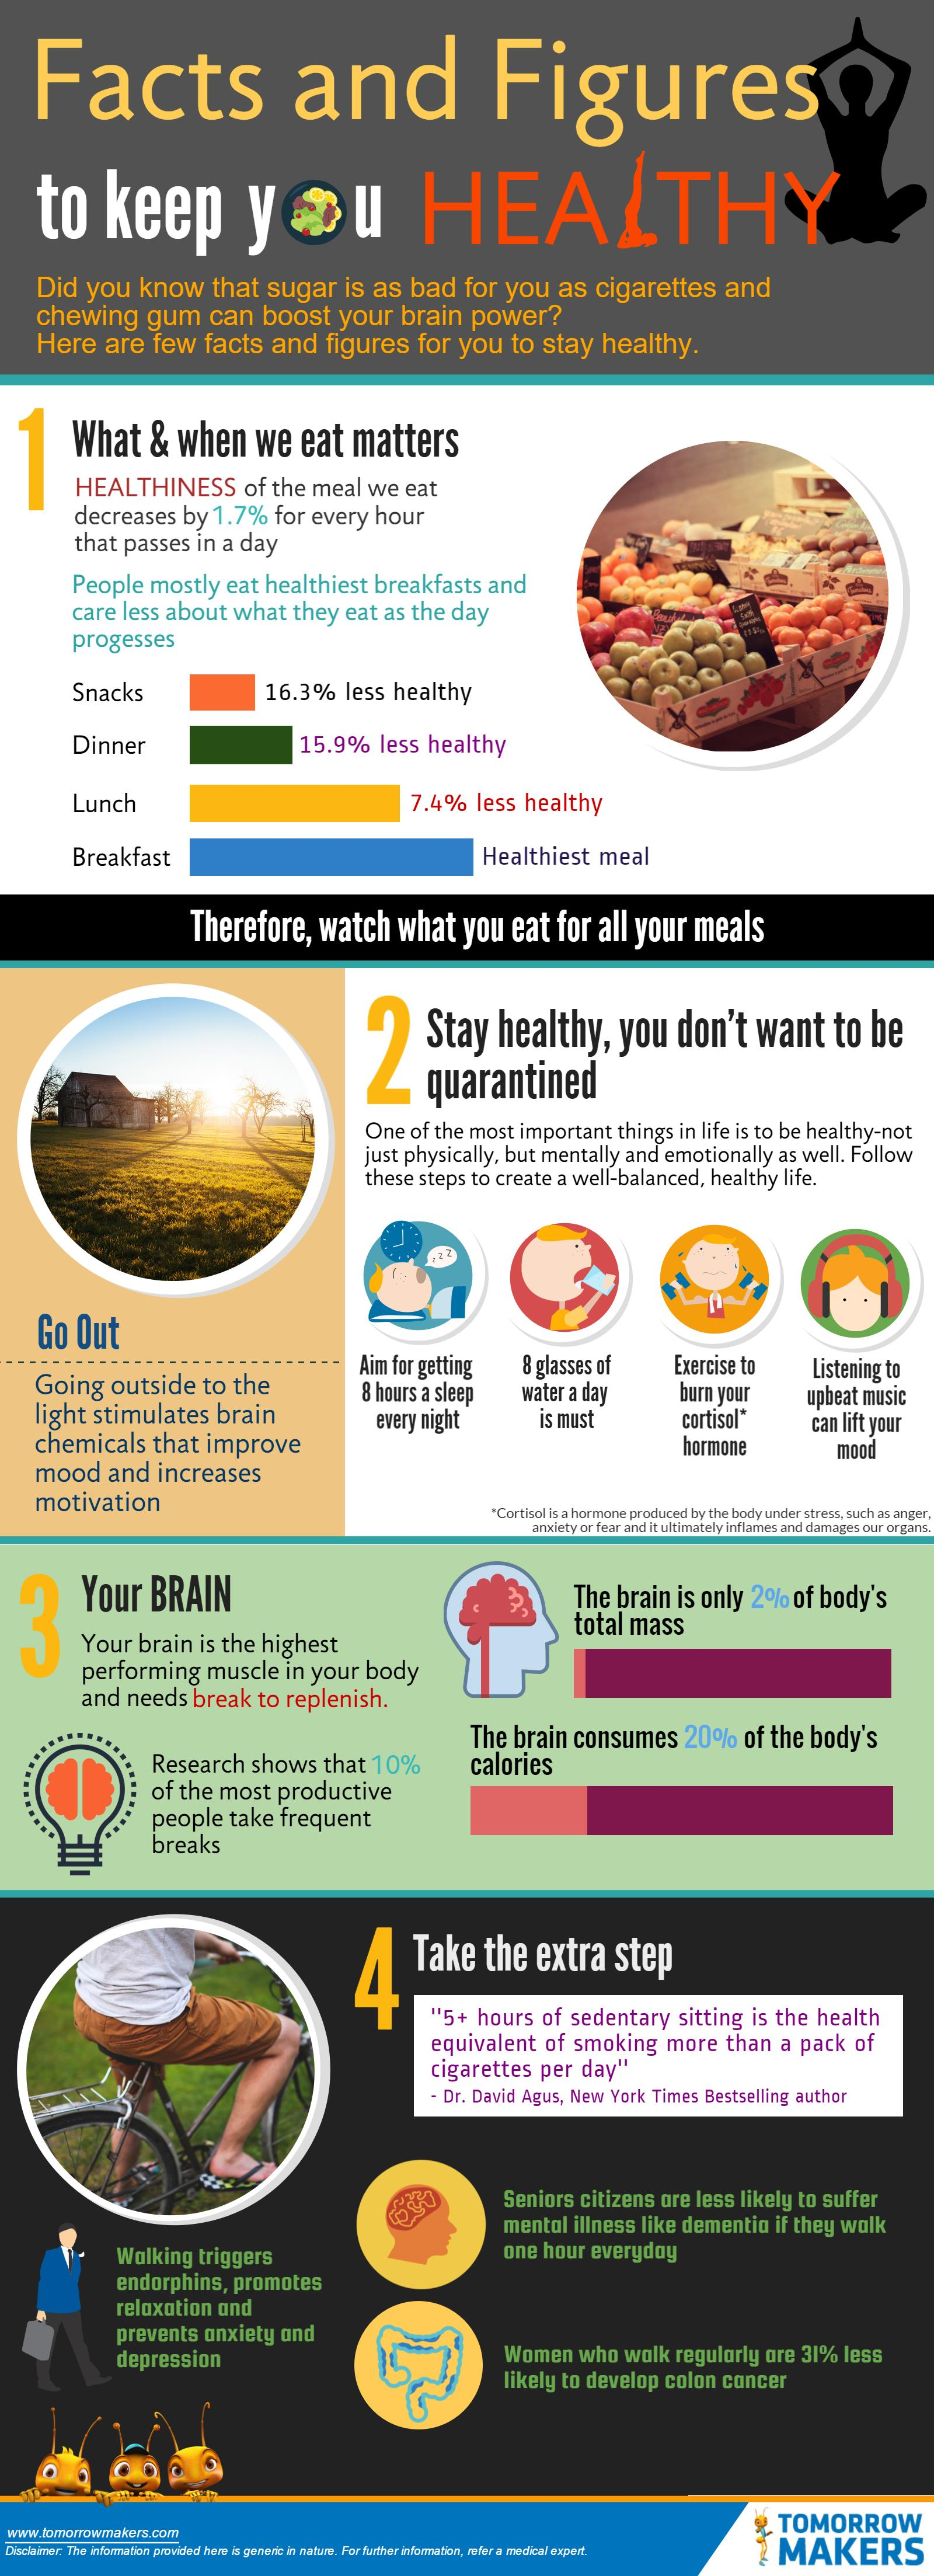 facts-and-figures-to-keep-you-healthy-infographic